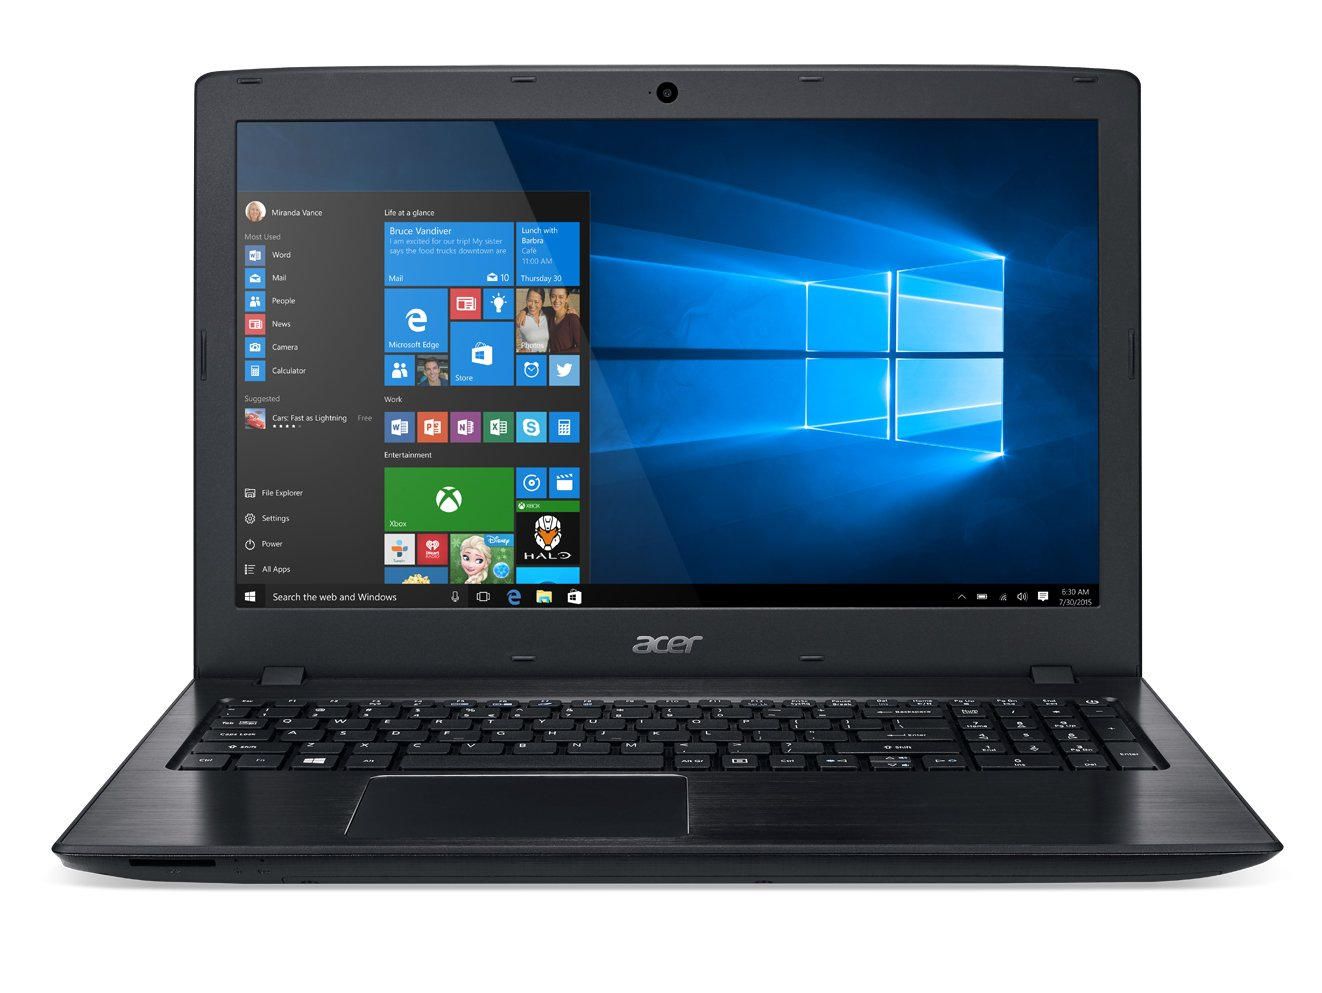 ACER ASPIRE M1202 NVIDIA GRAPHICS TREIBER WINDOWS 10